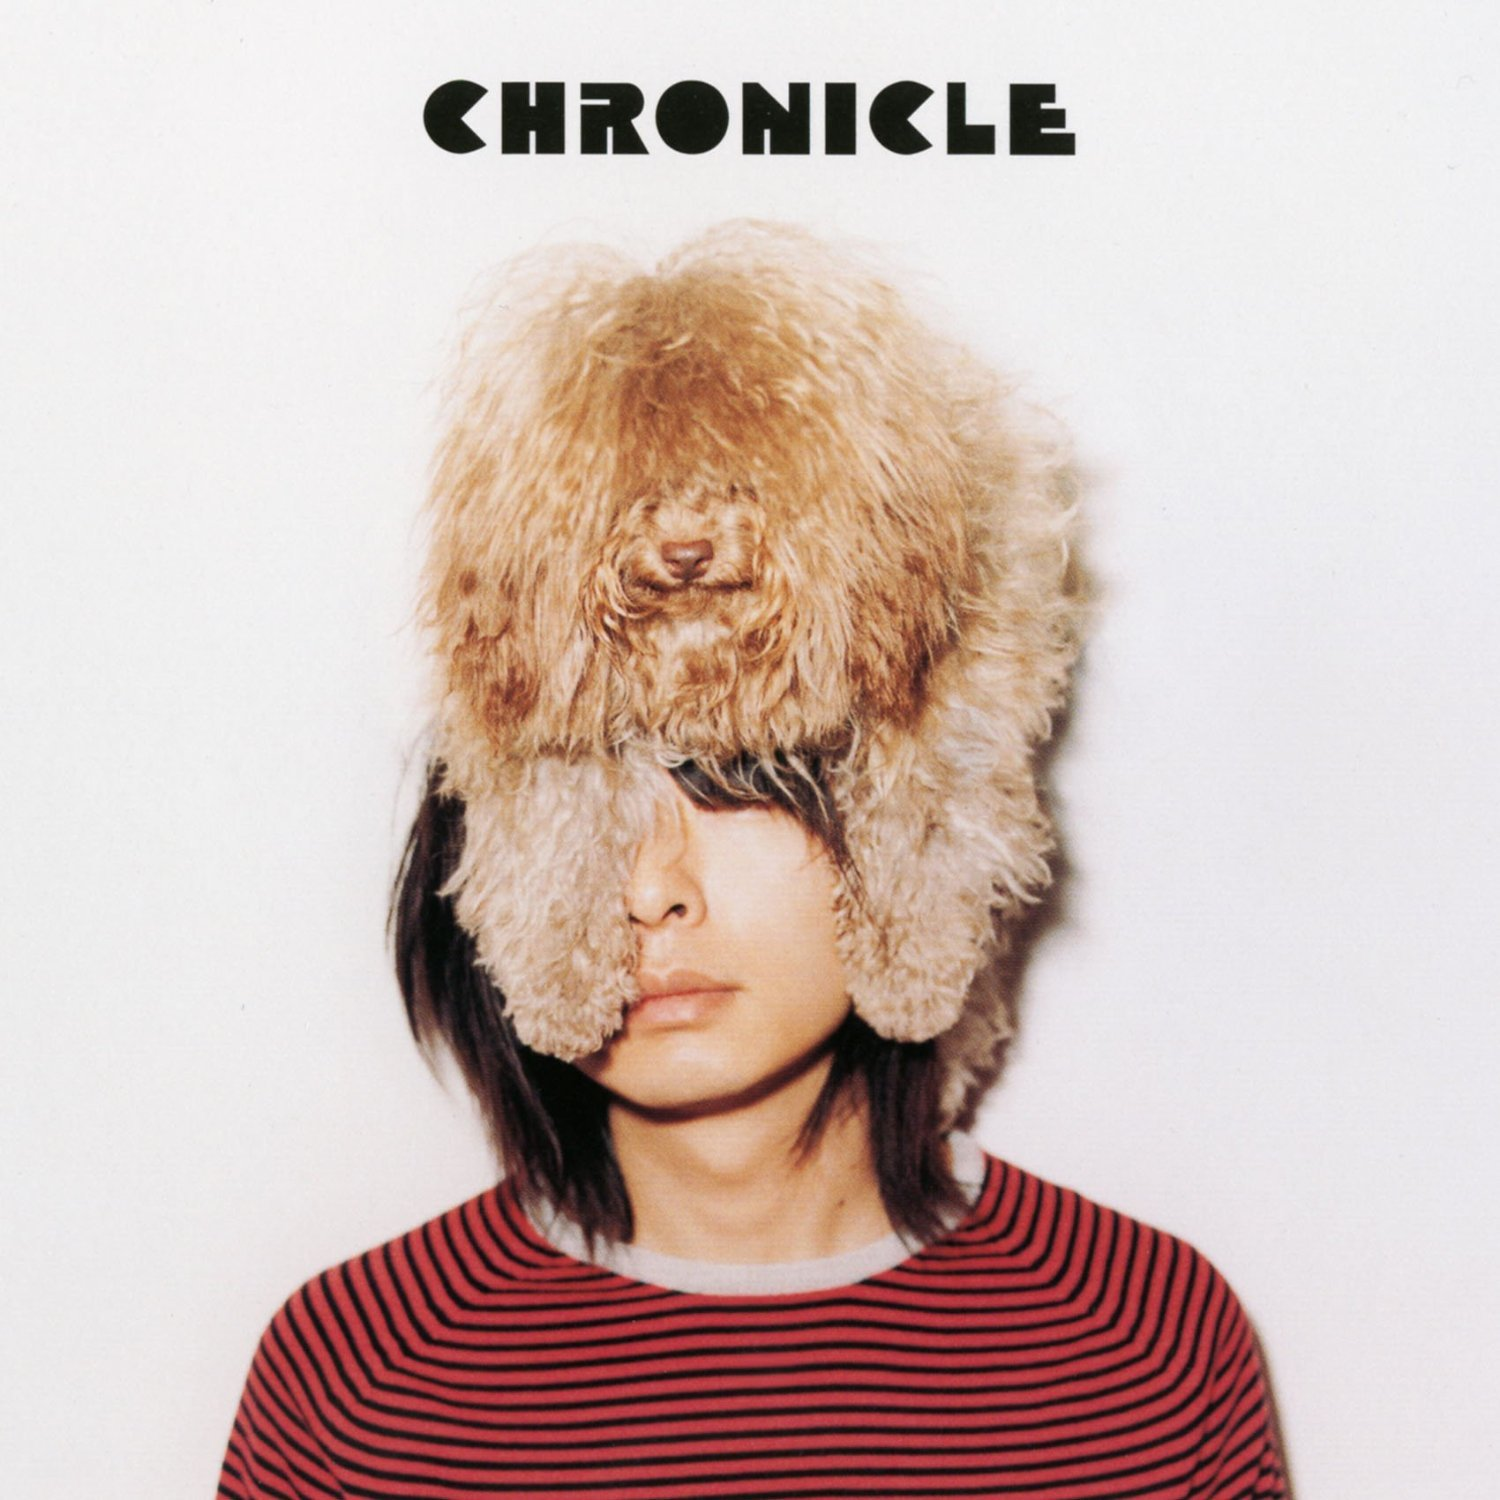 『CHRONICLE』